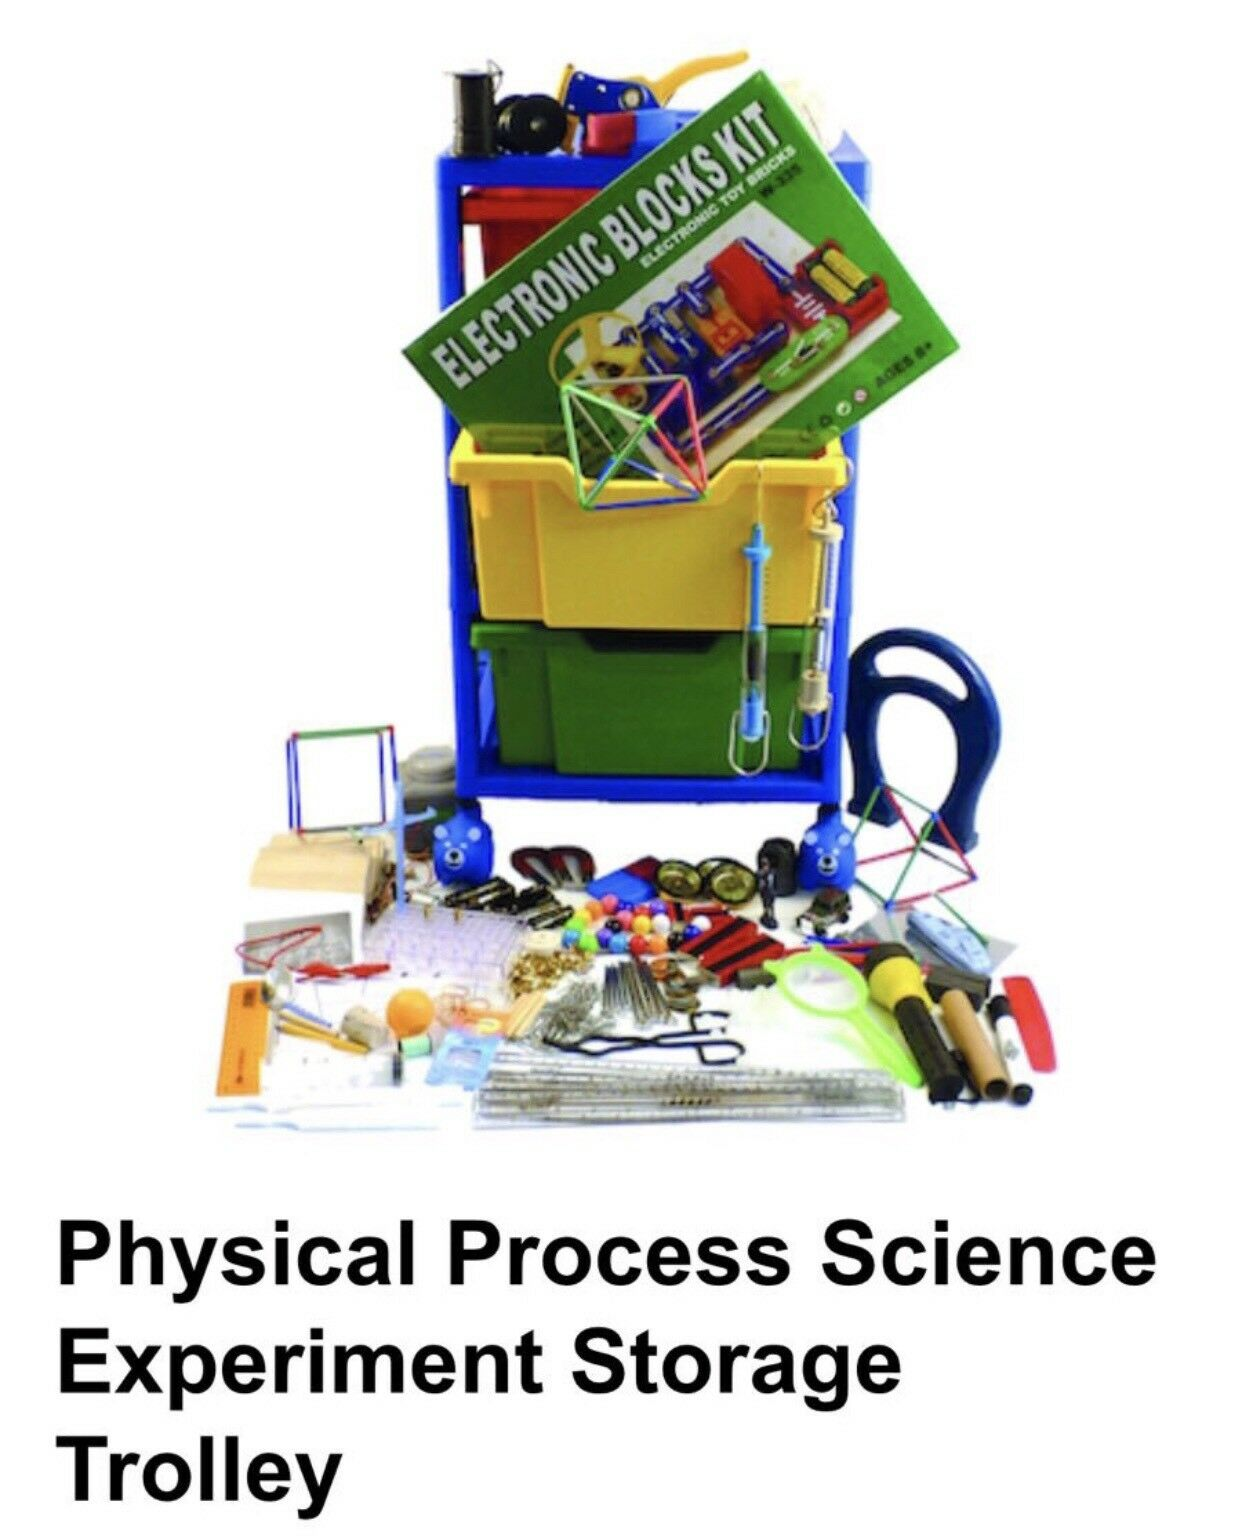 Physical Process Science Experiment Items Plus Trolley • Key Stage2(Age 7-11yrs)